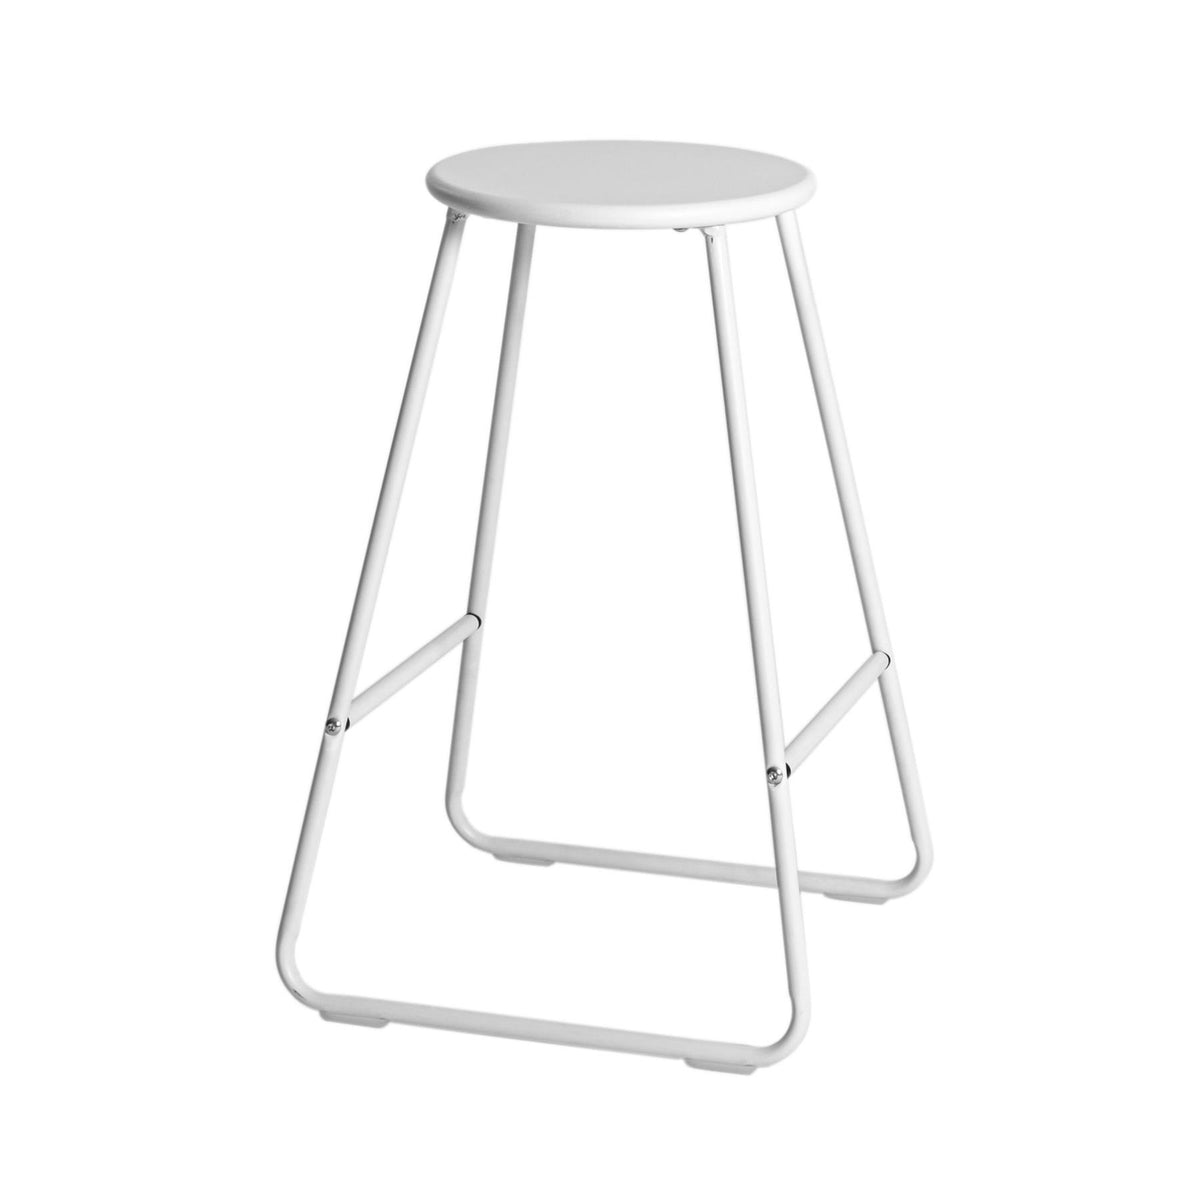 Harbour Housewares Wooden Bar Stool - White / White